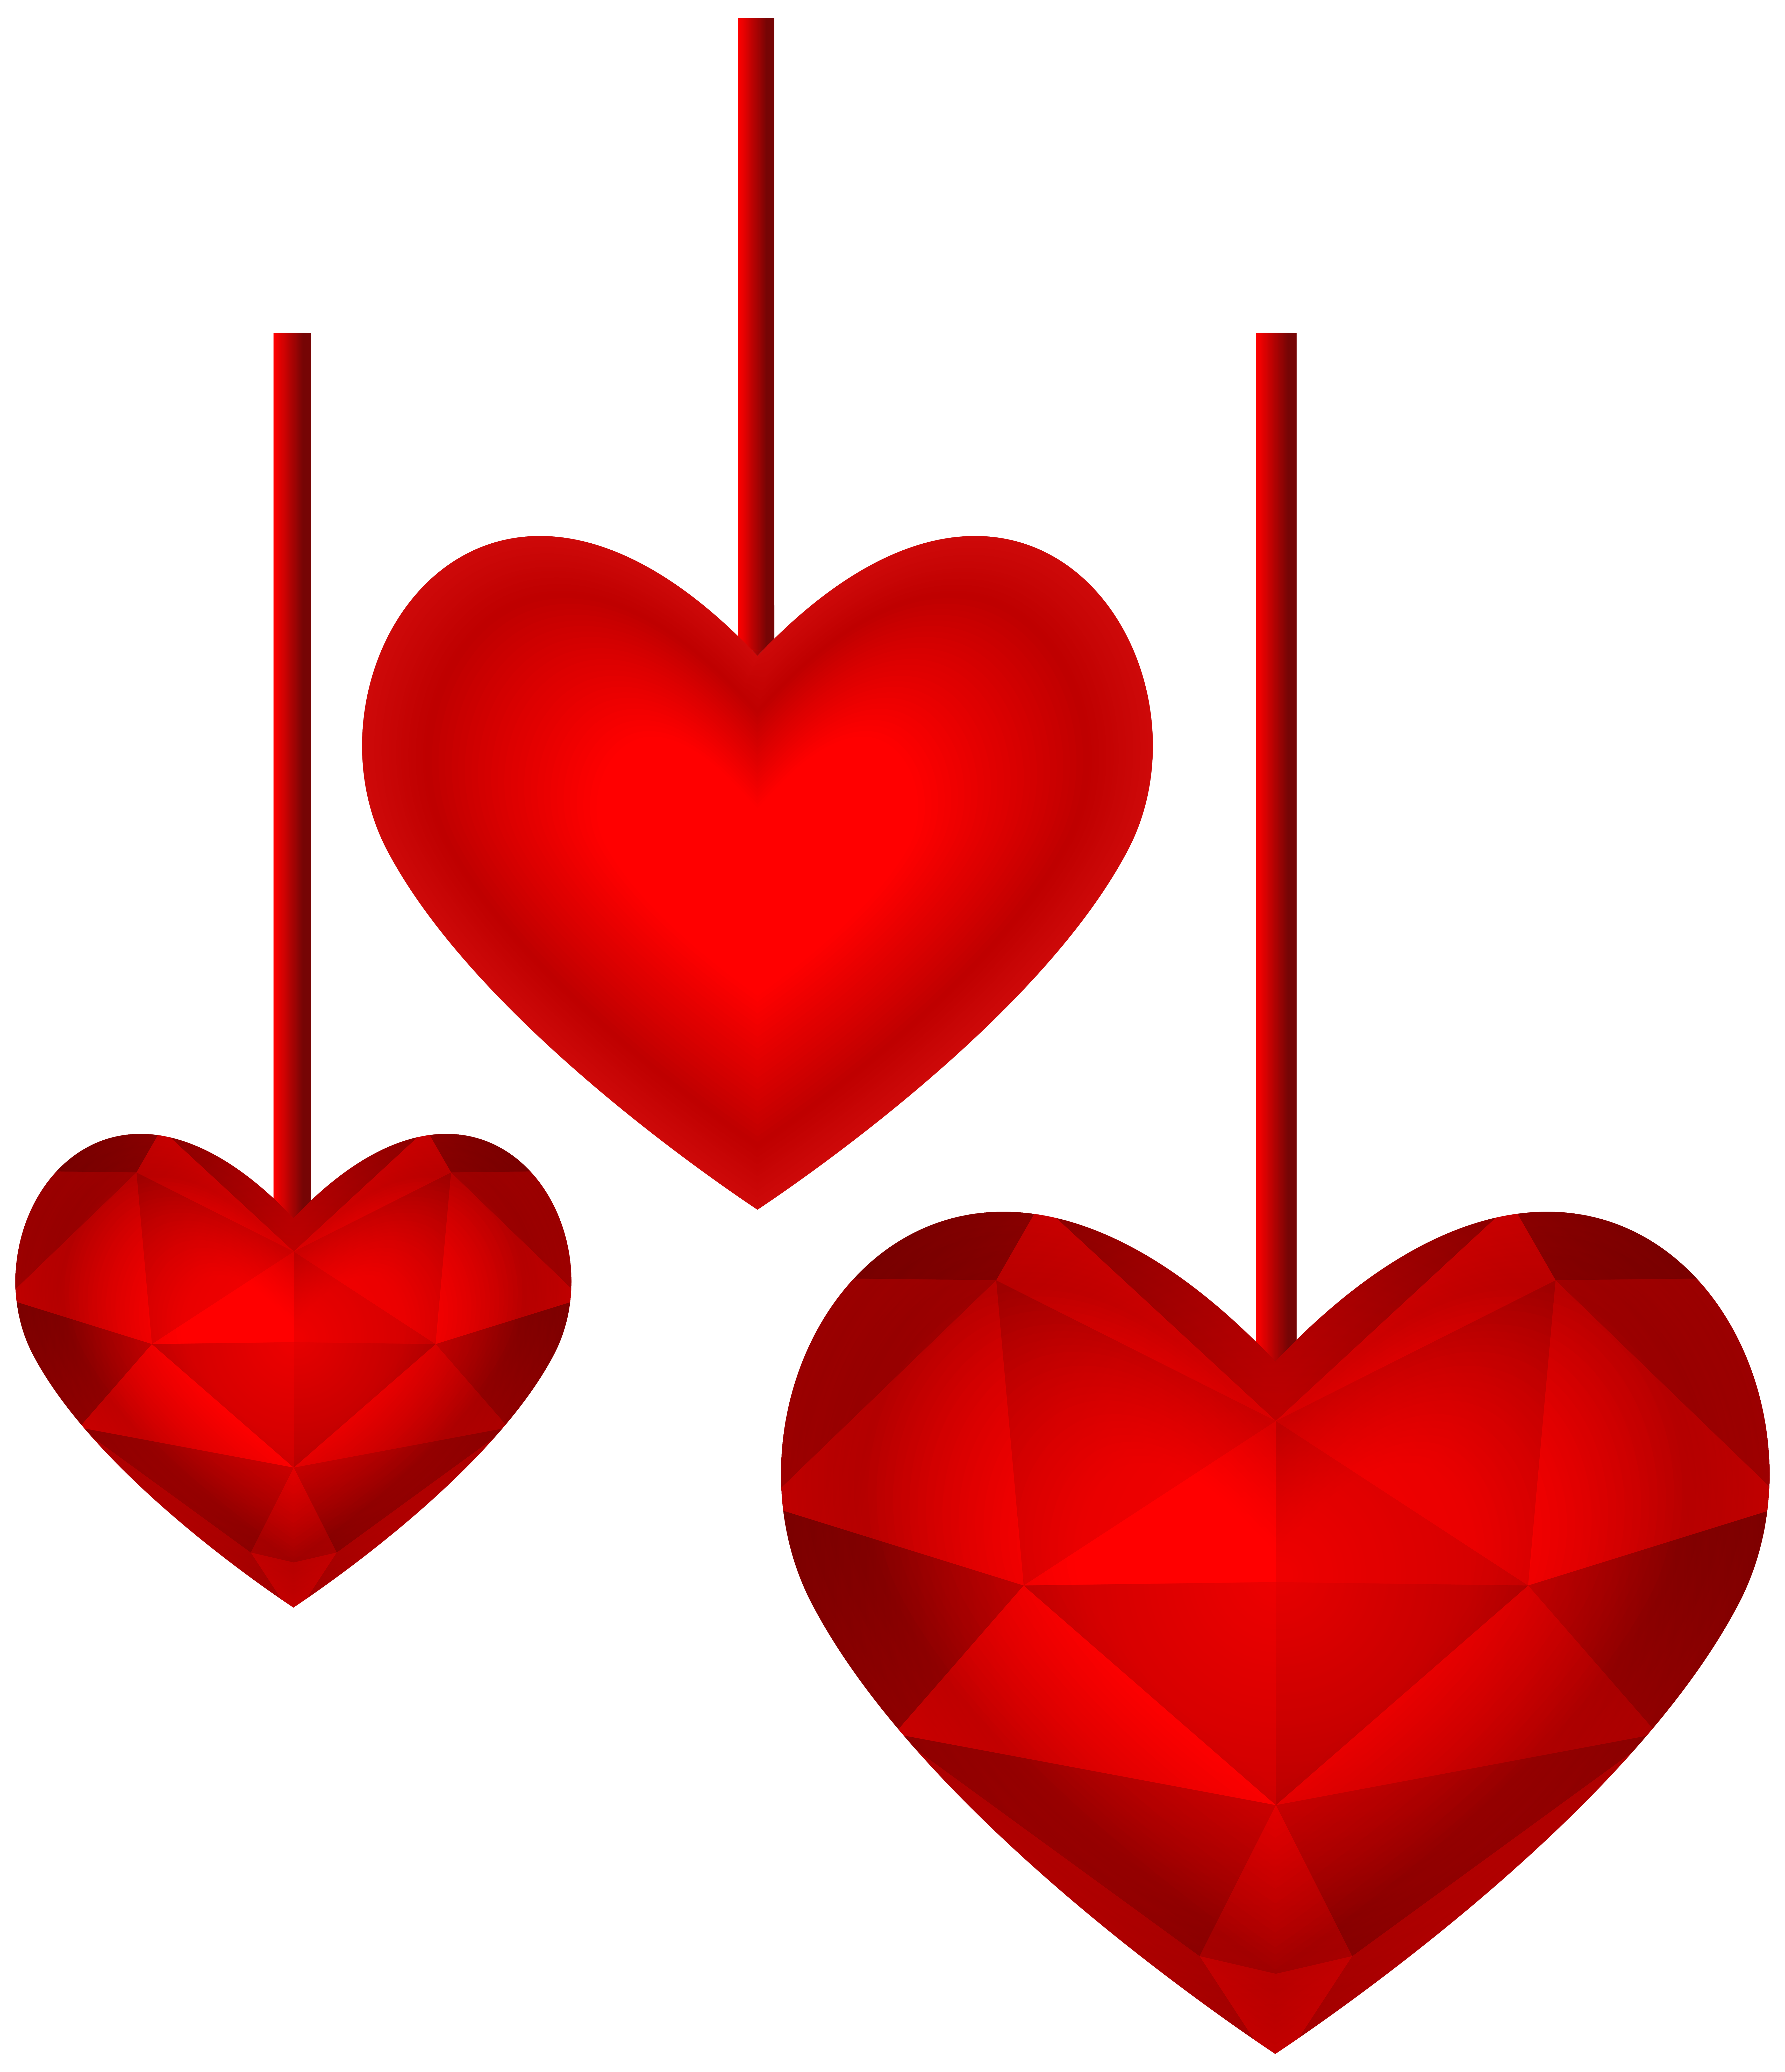 image free stock Lollipop clipart red heart. Hanging hearts transparent png